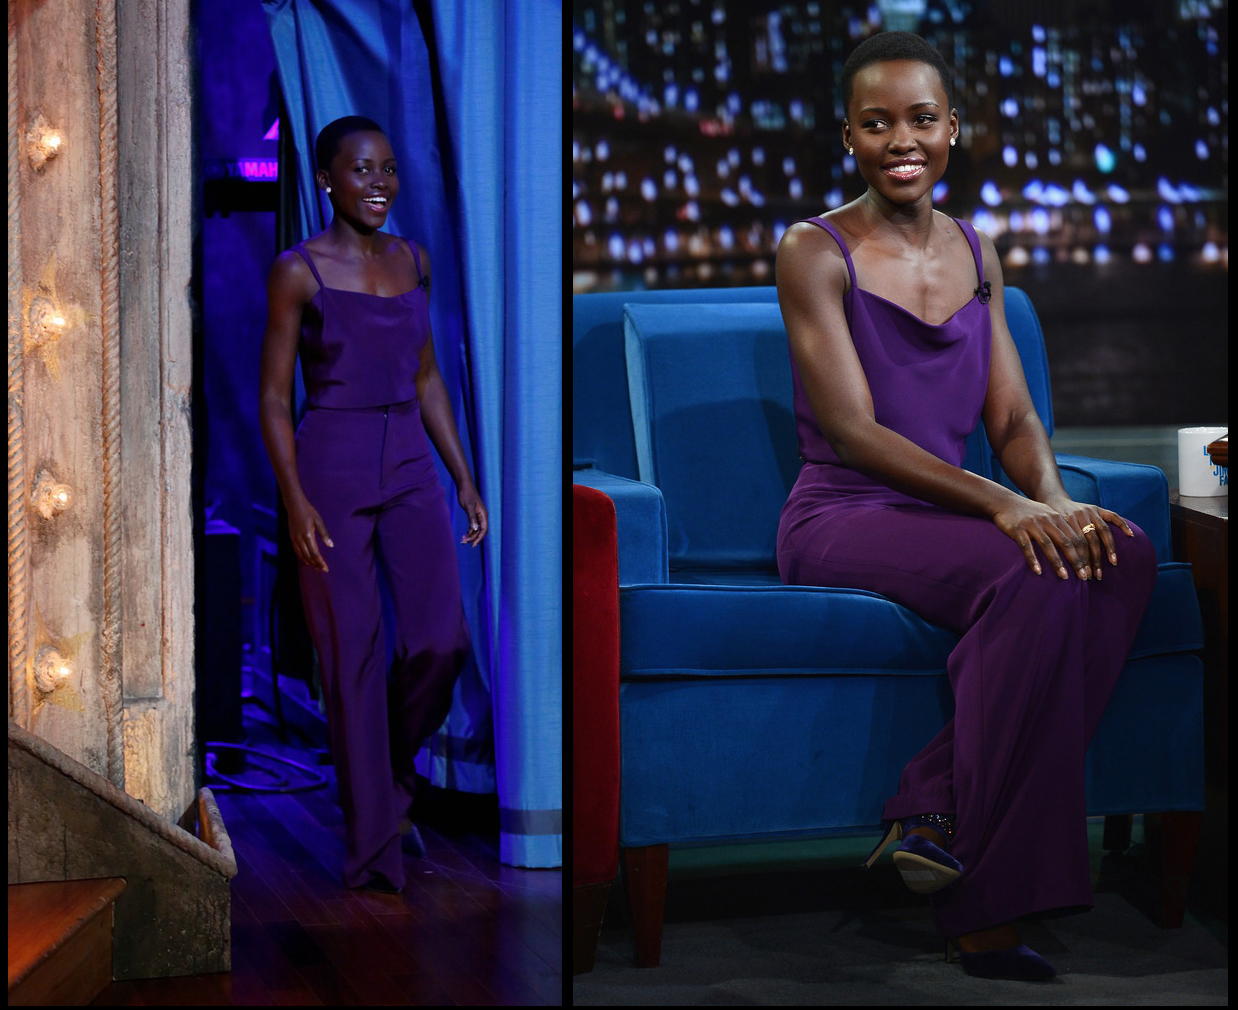 lupita-nyongo-at-jimmy-fallon-show